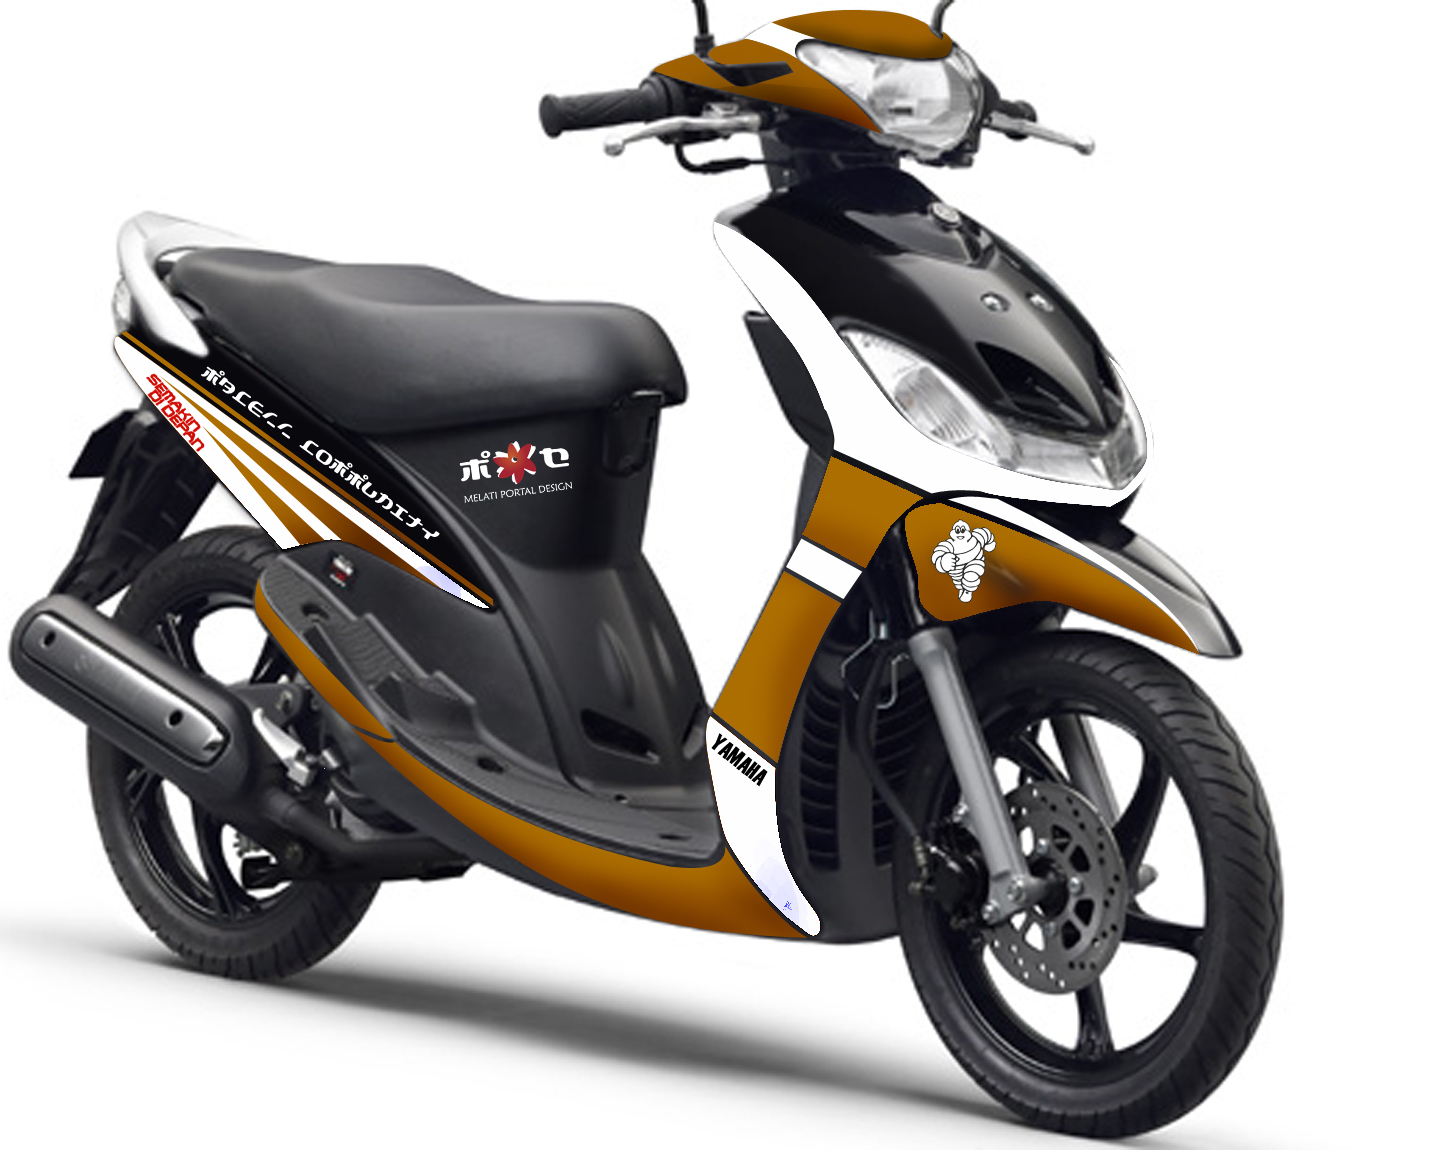 Yamaha mio sporty 2009 cutting design by mod melati portal design